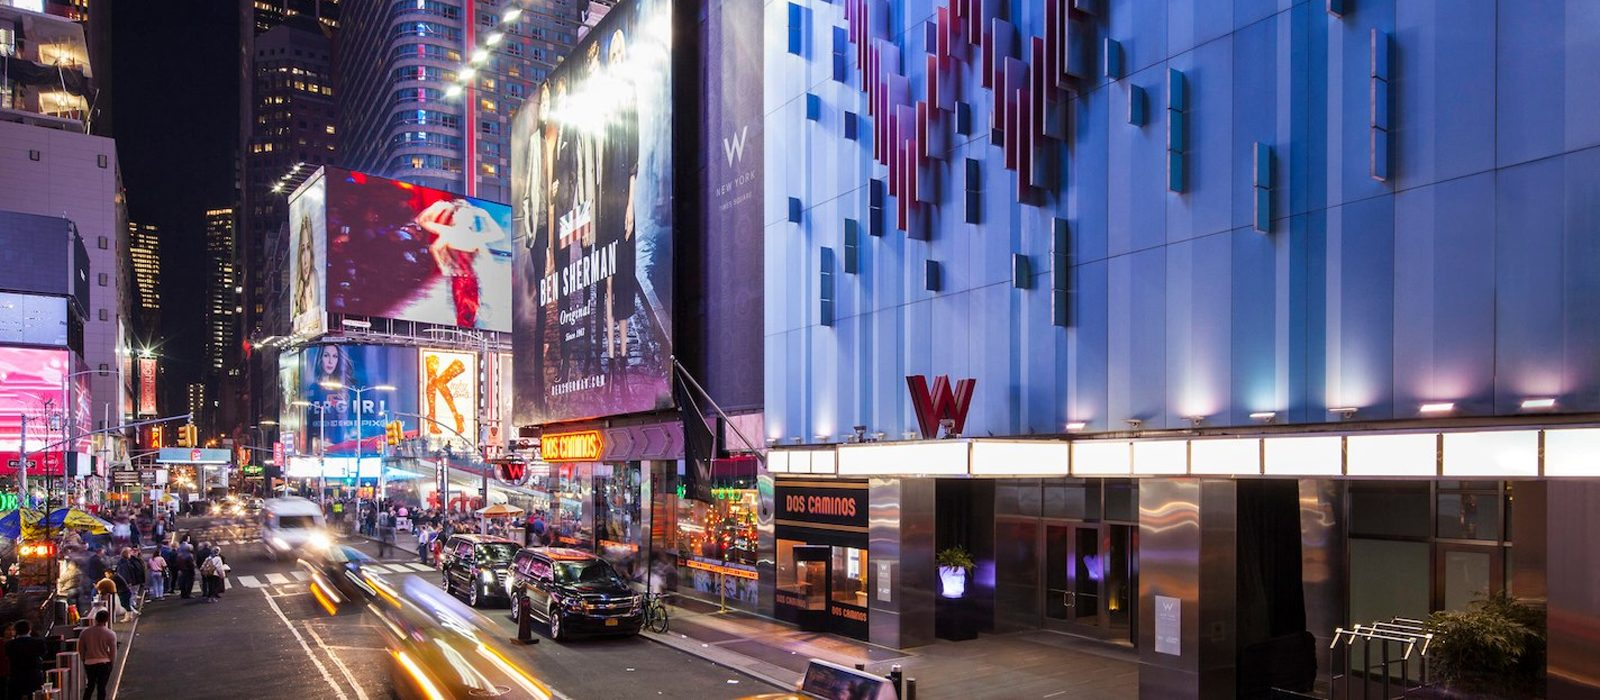 New York Honeymoon Packages W Times Square New York Header